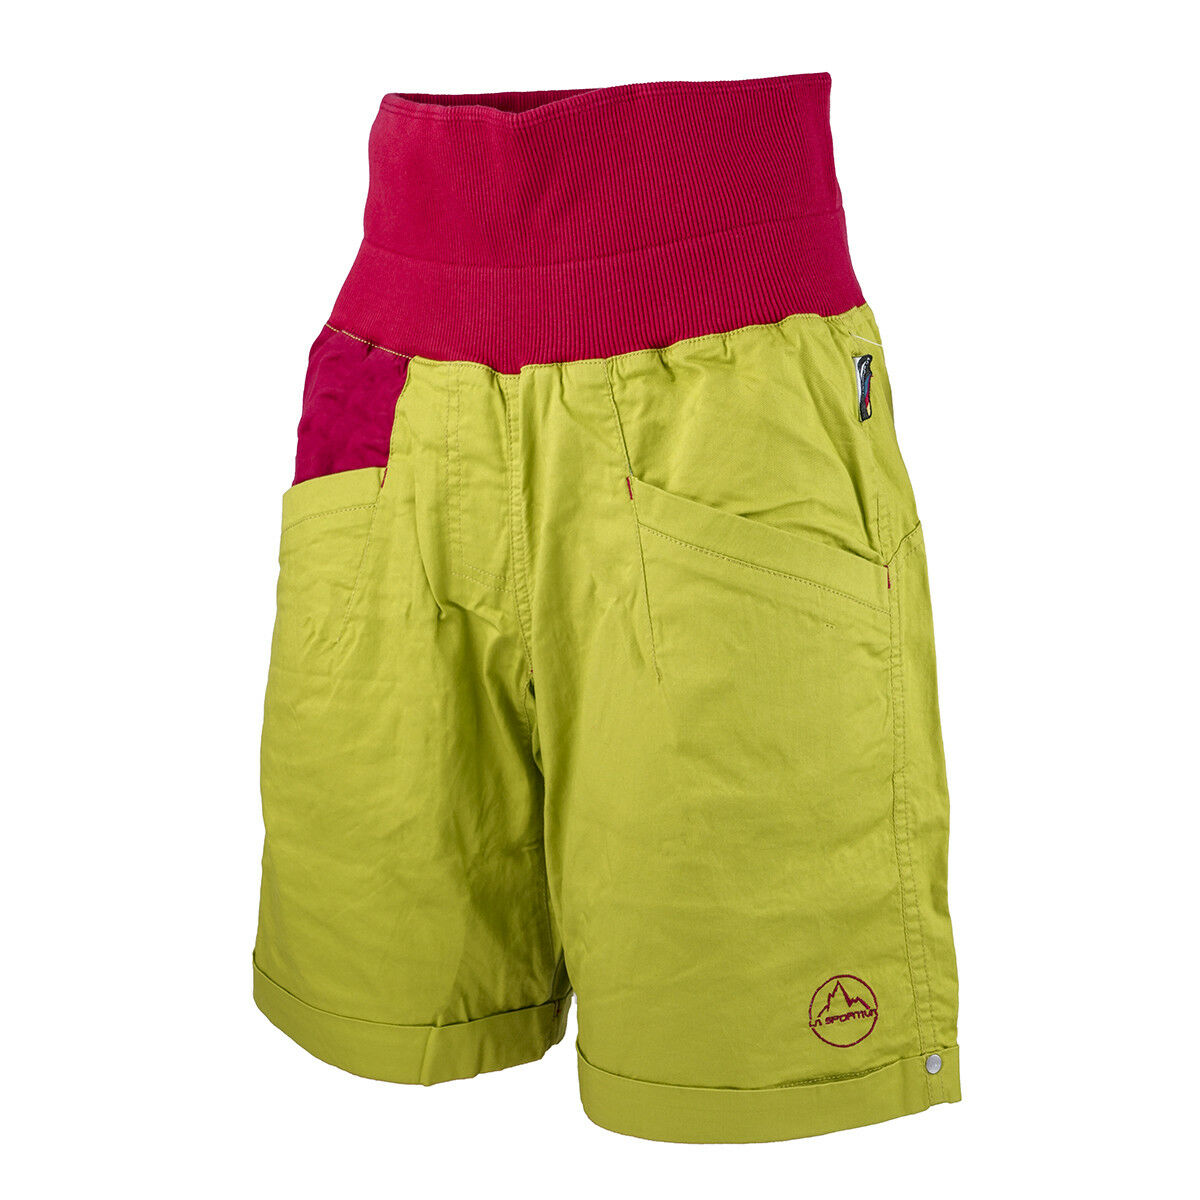 La Sportiva Women Ramp Short (S) Citronelle   Berry